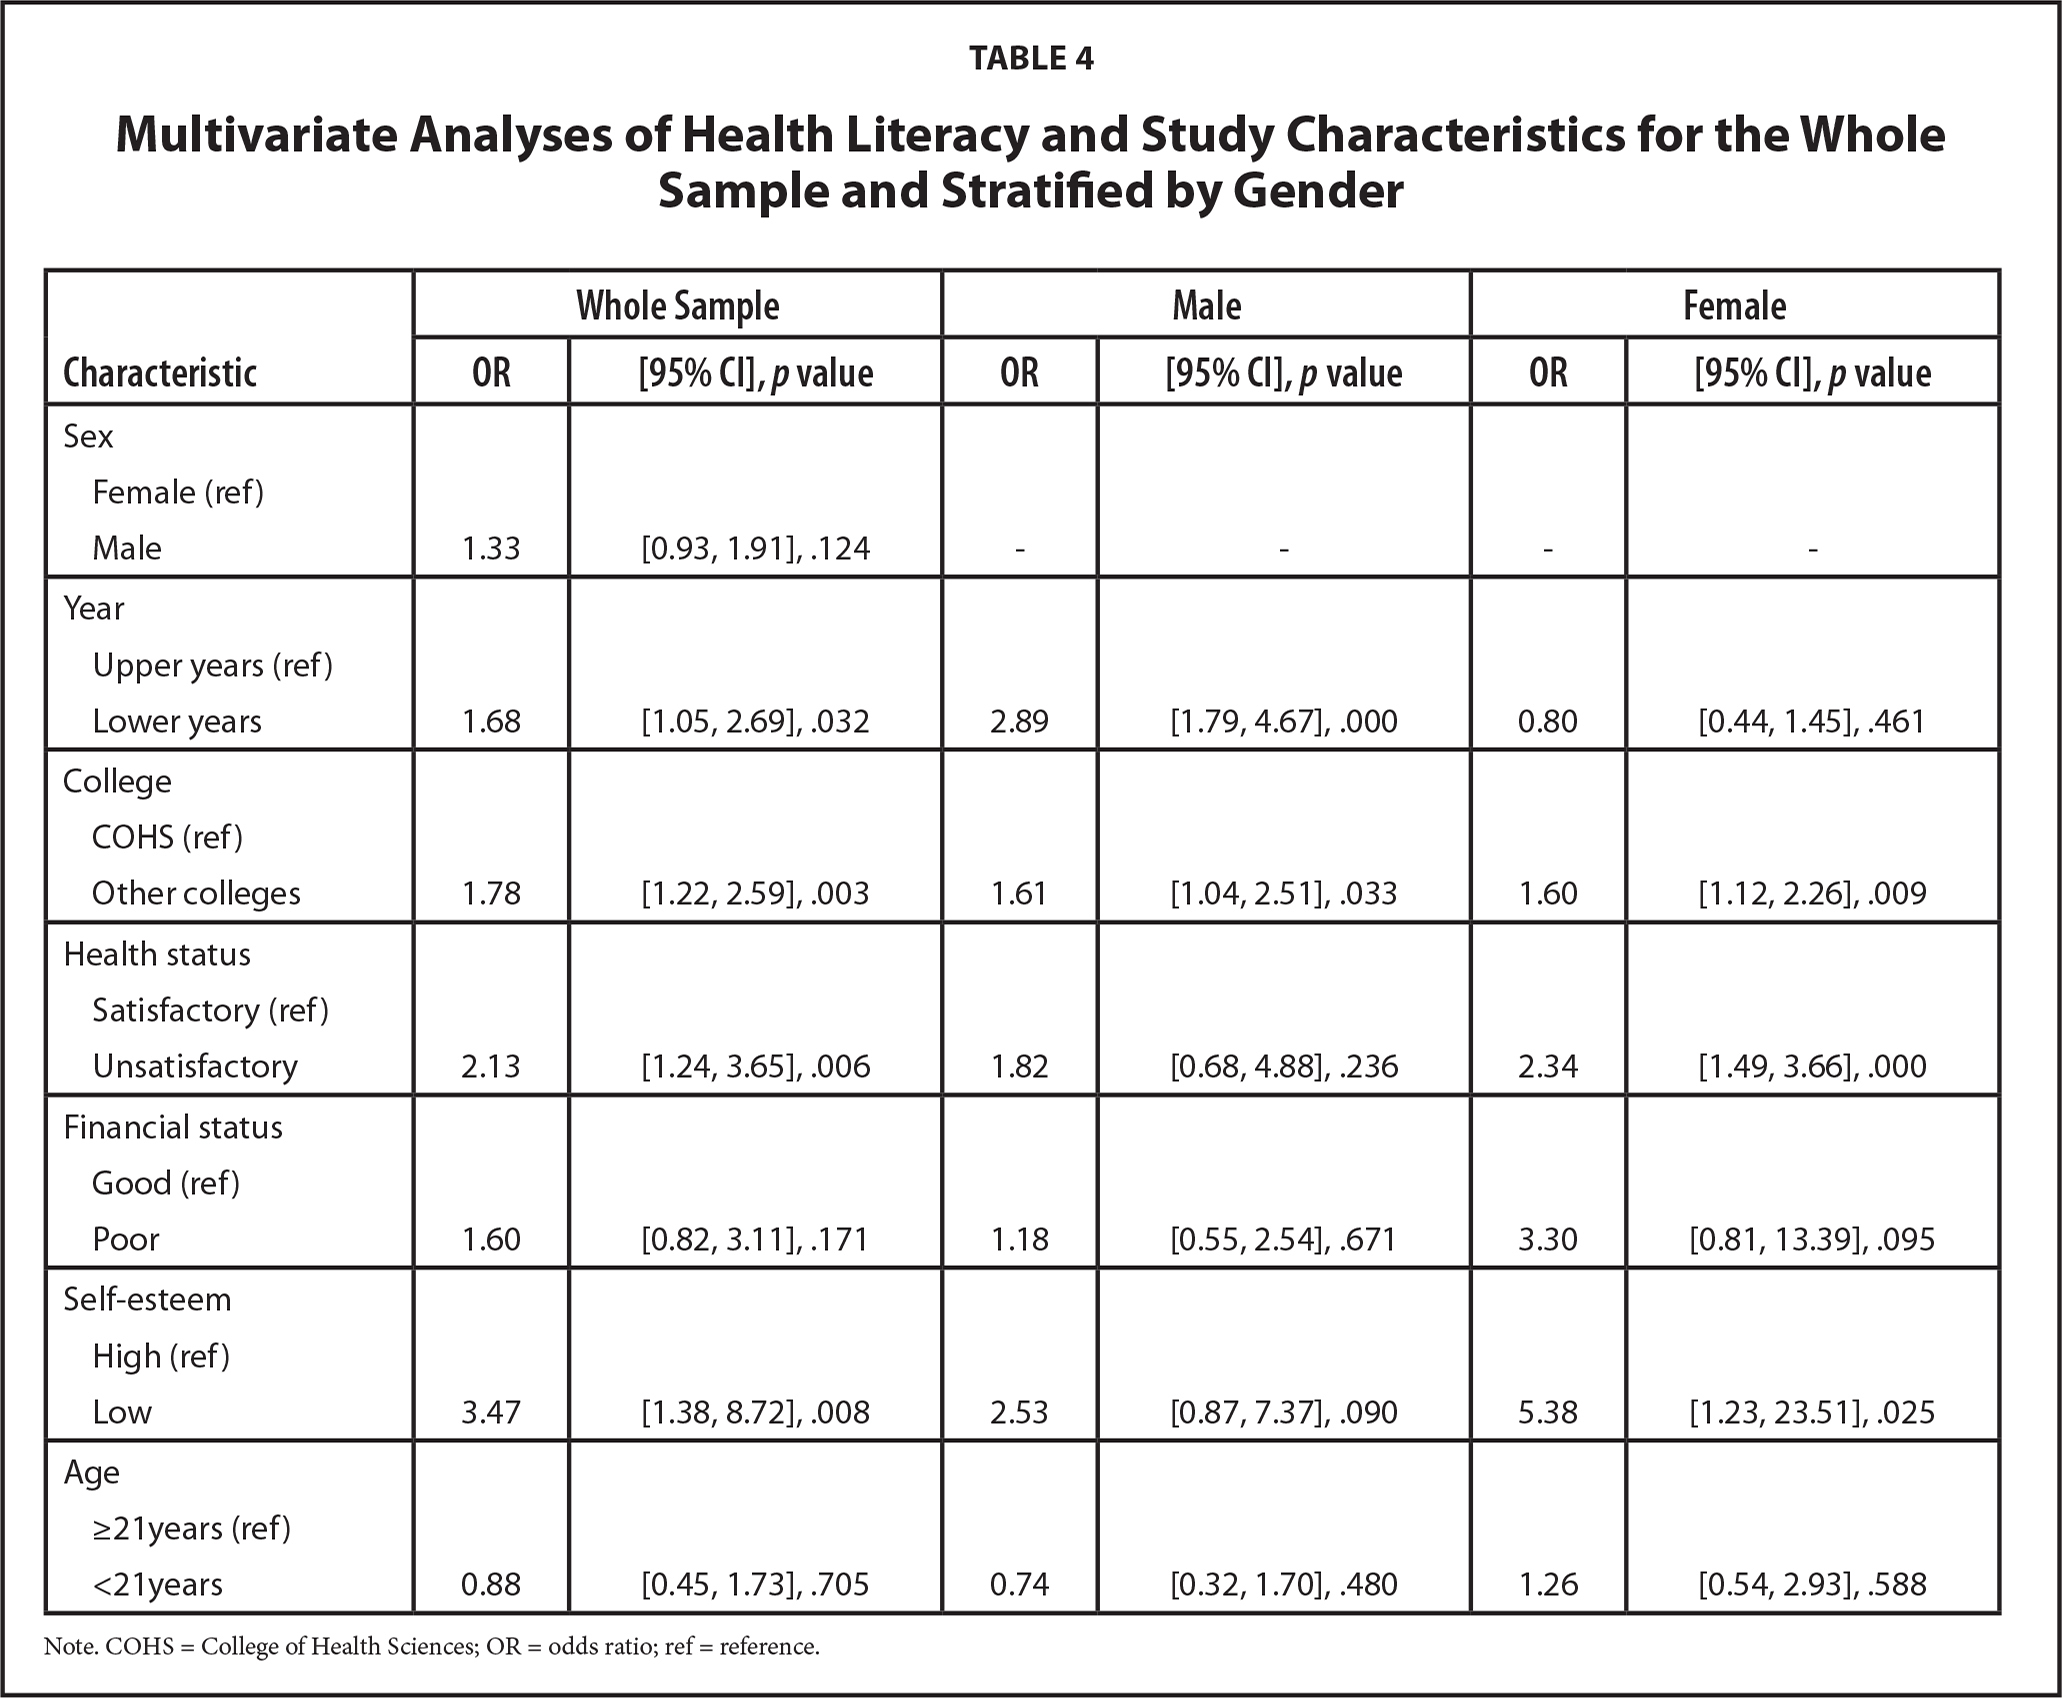 Multivariate Analyses of Health Literacy and Study Characteristics for the Whole Sample and Stratified by Gender